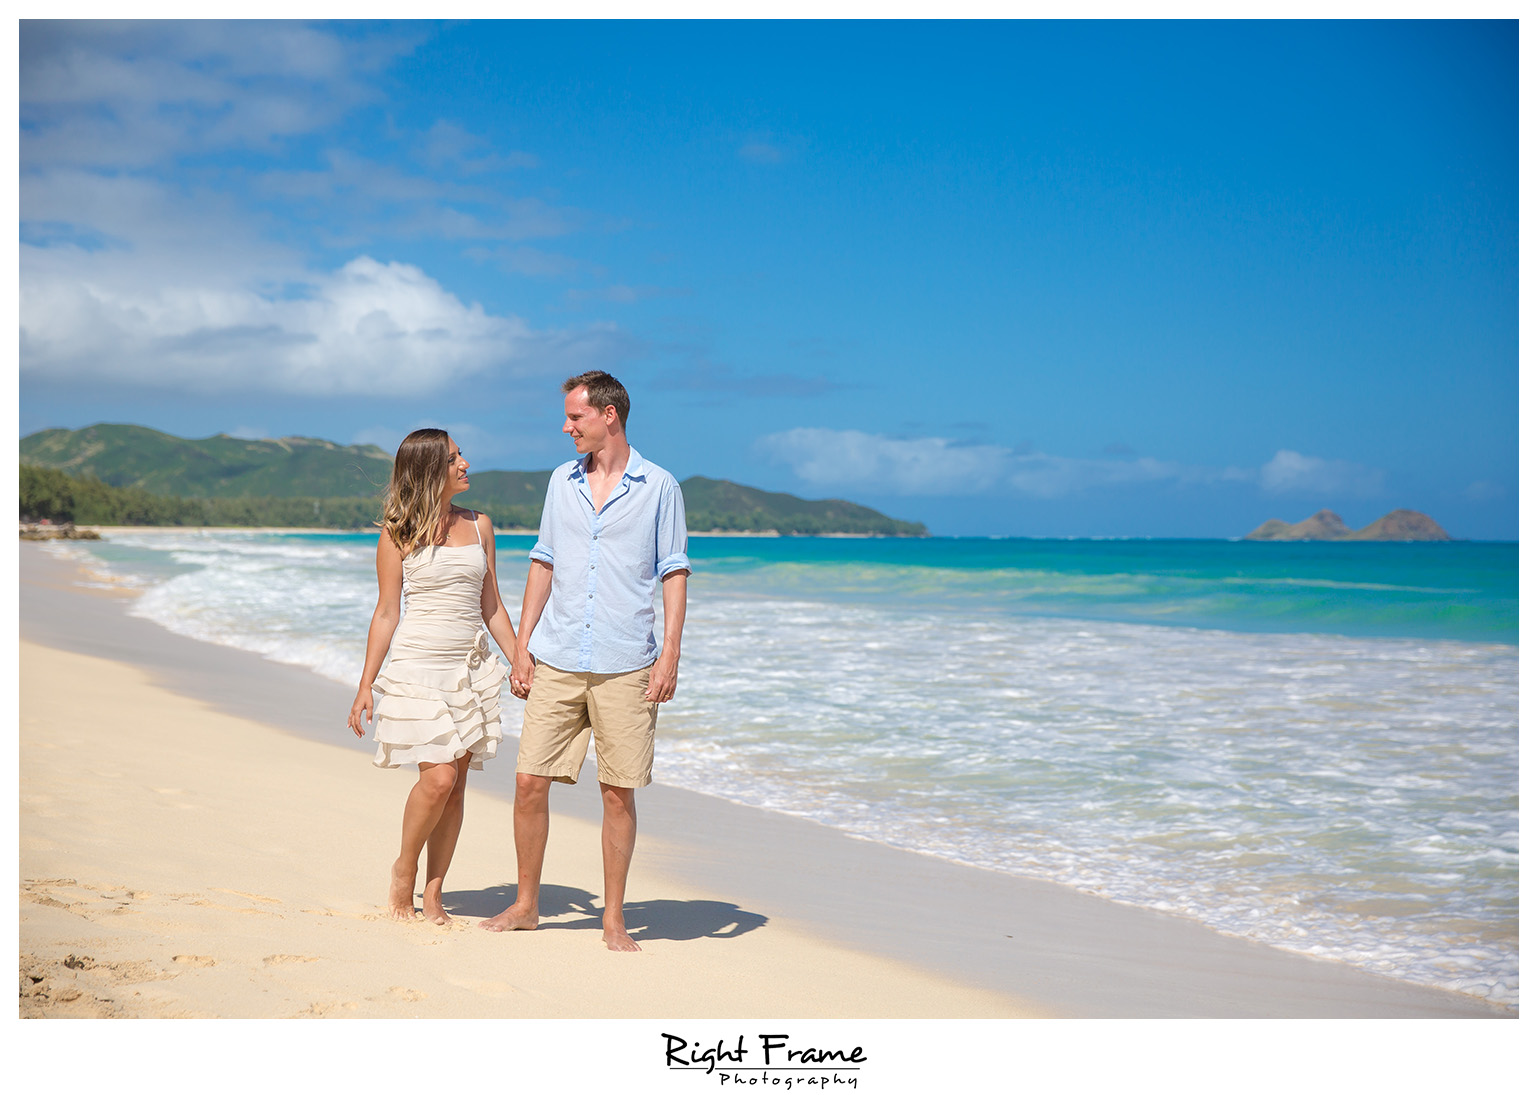 Beach Wedding Ceremony Oahu: North Shore Oahu Wedding Photographer By RIGHT FRAME